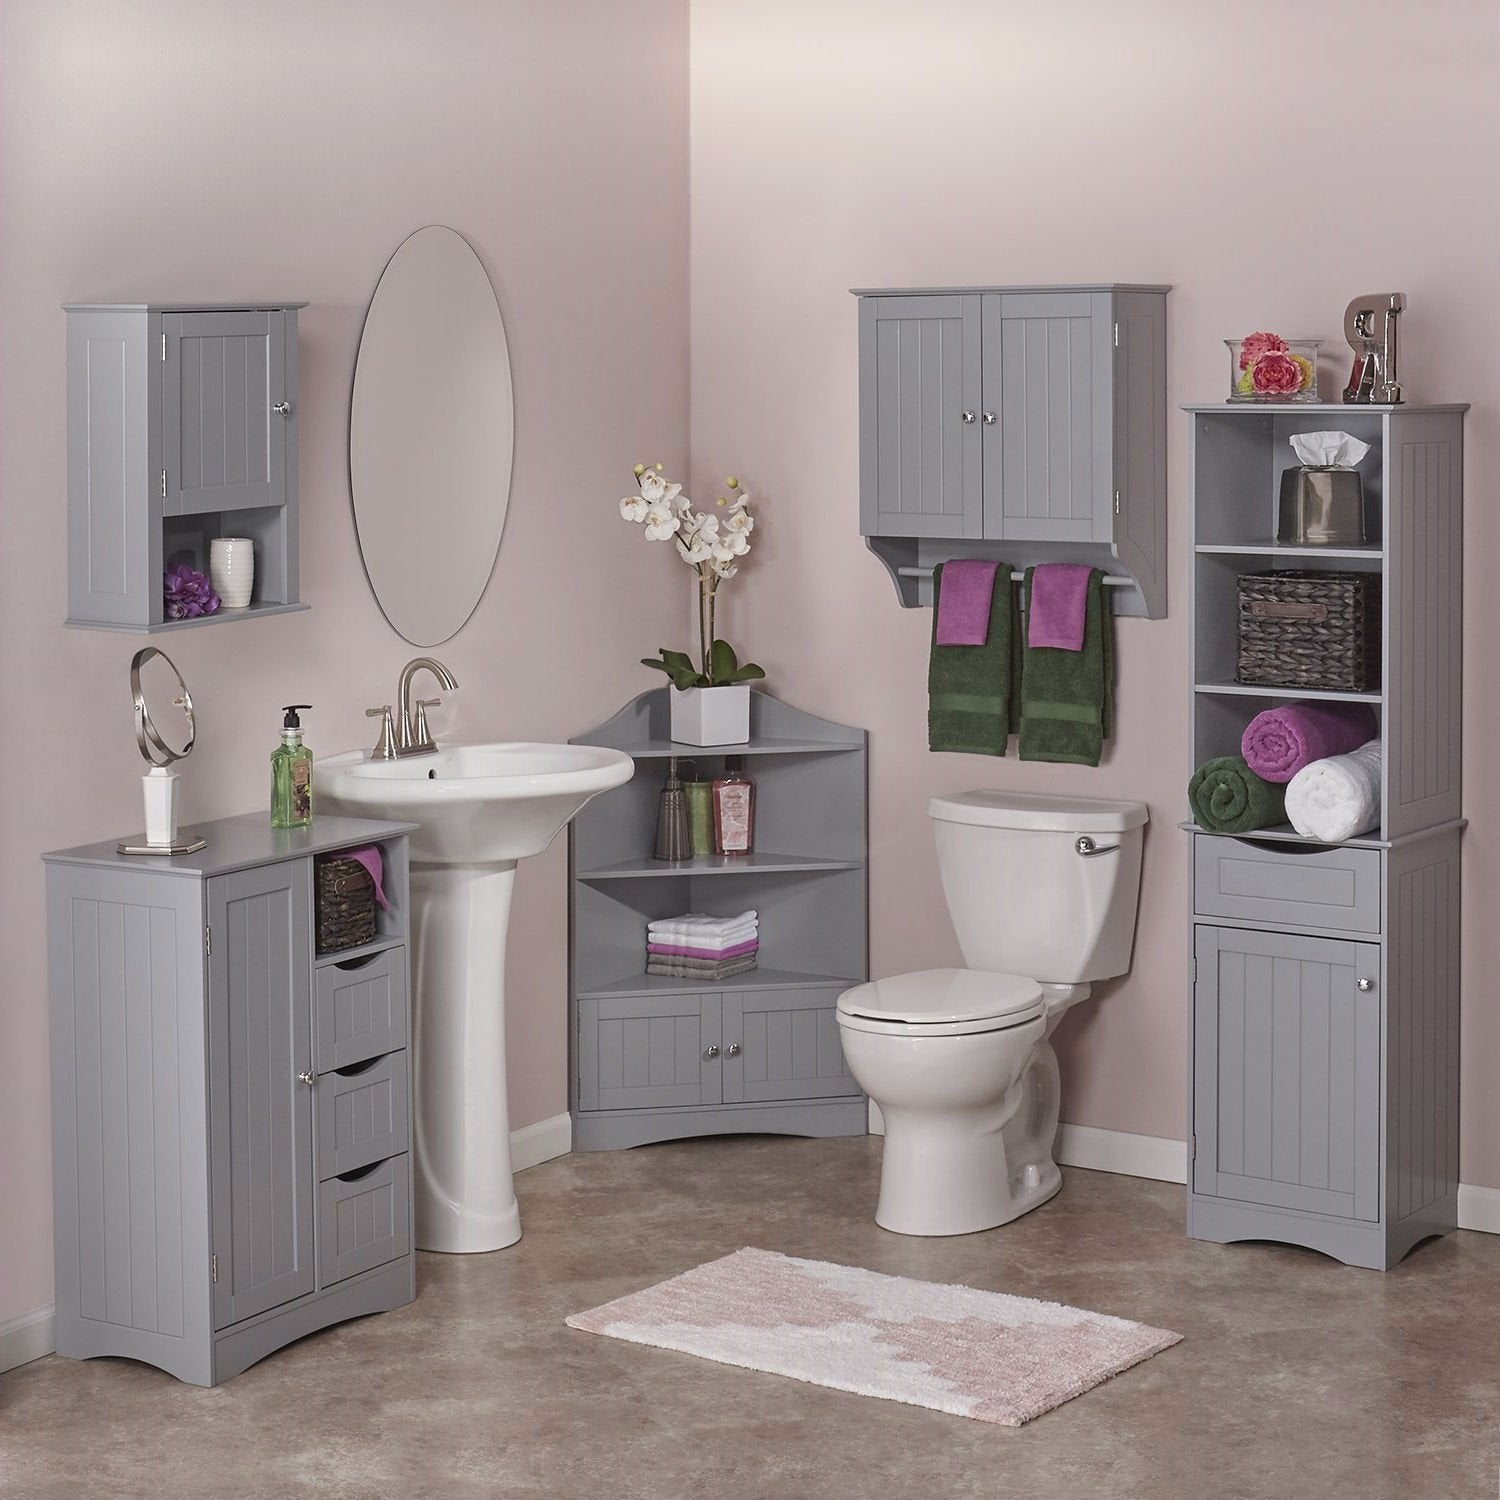 Gray 2-Door Bathroom Wall Cabinet with Towel Bar